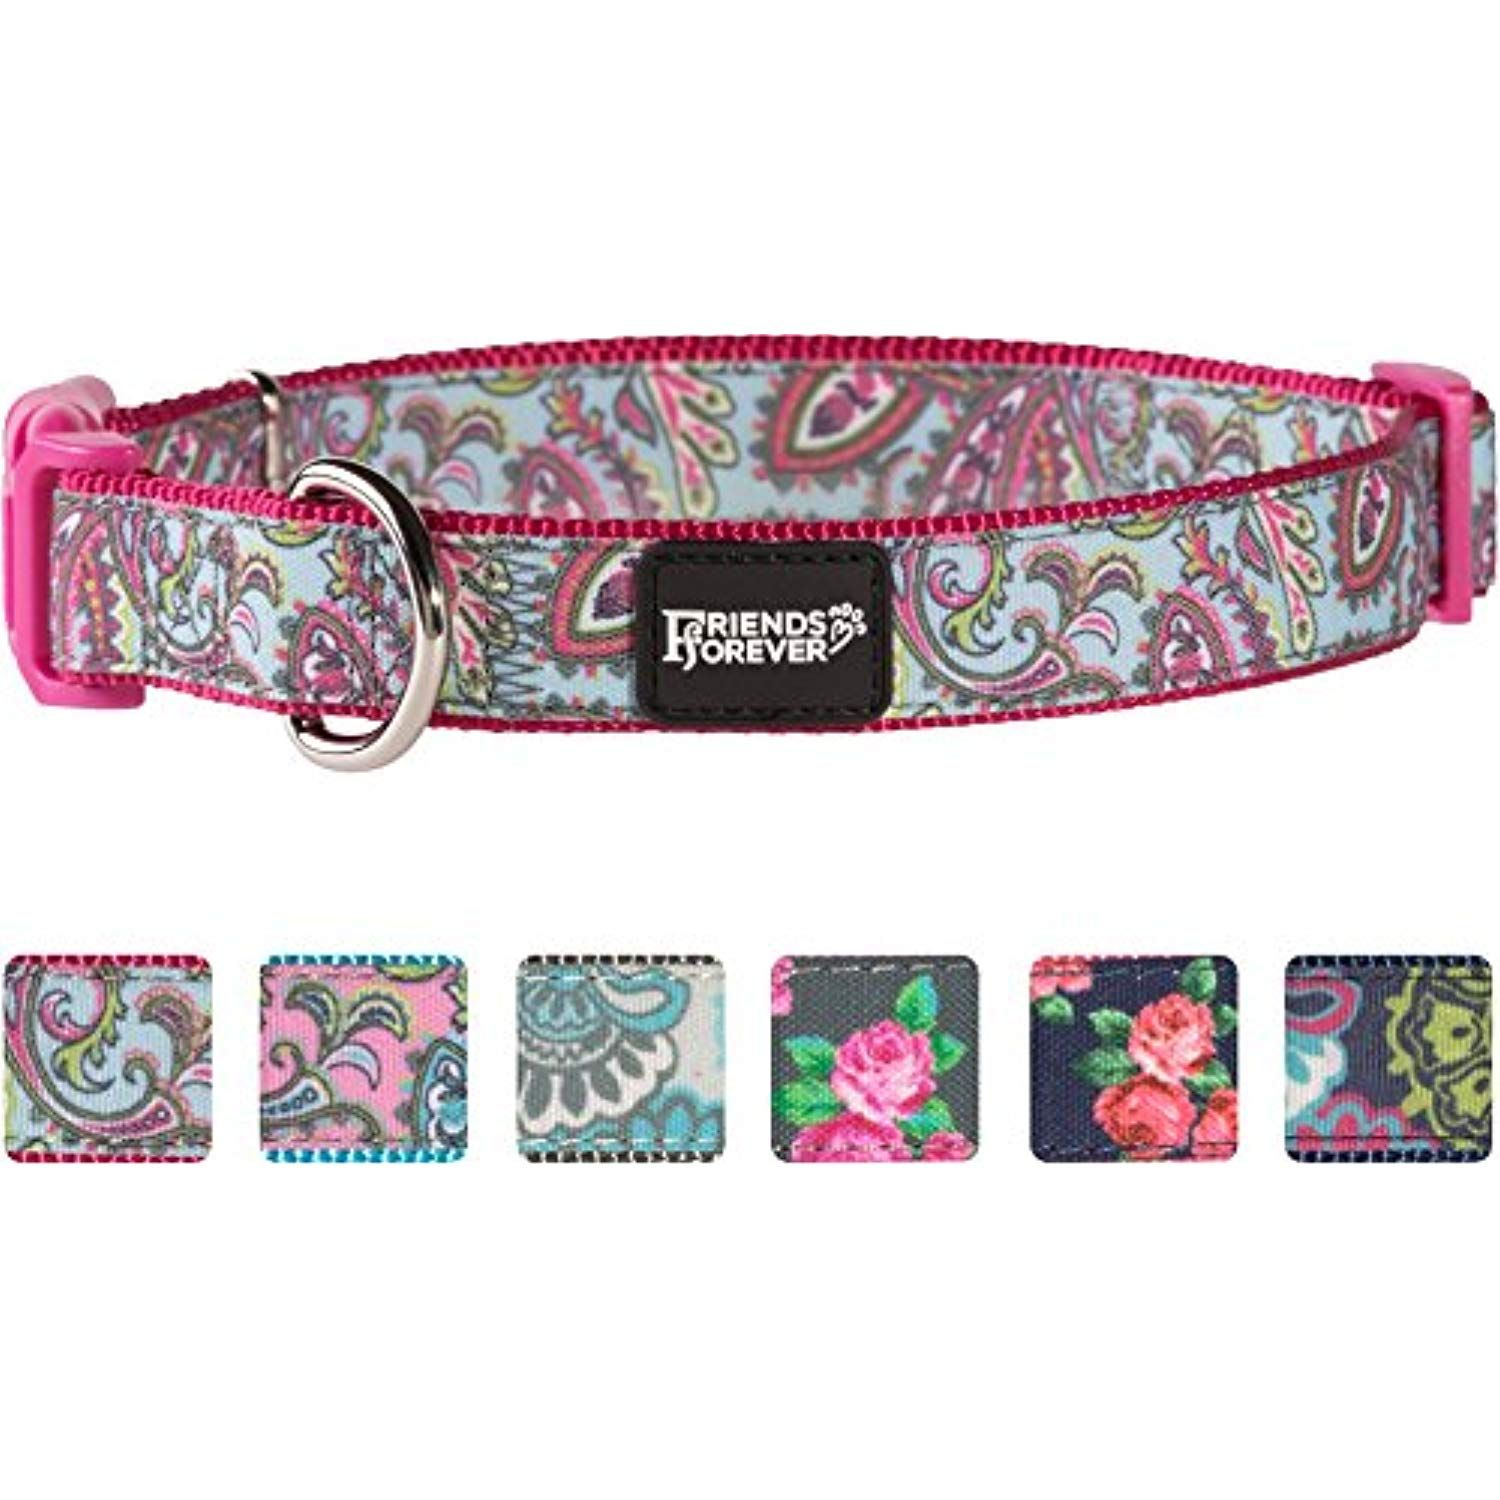 Friends forever dog collar for dogs fashion print paisley